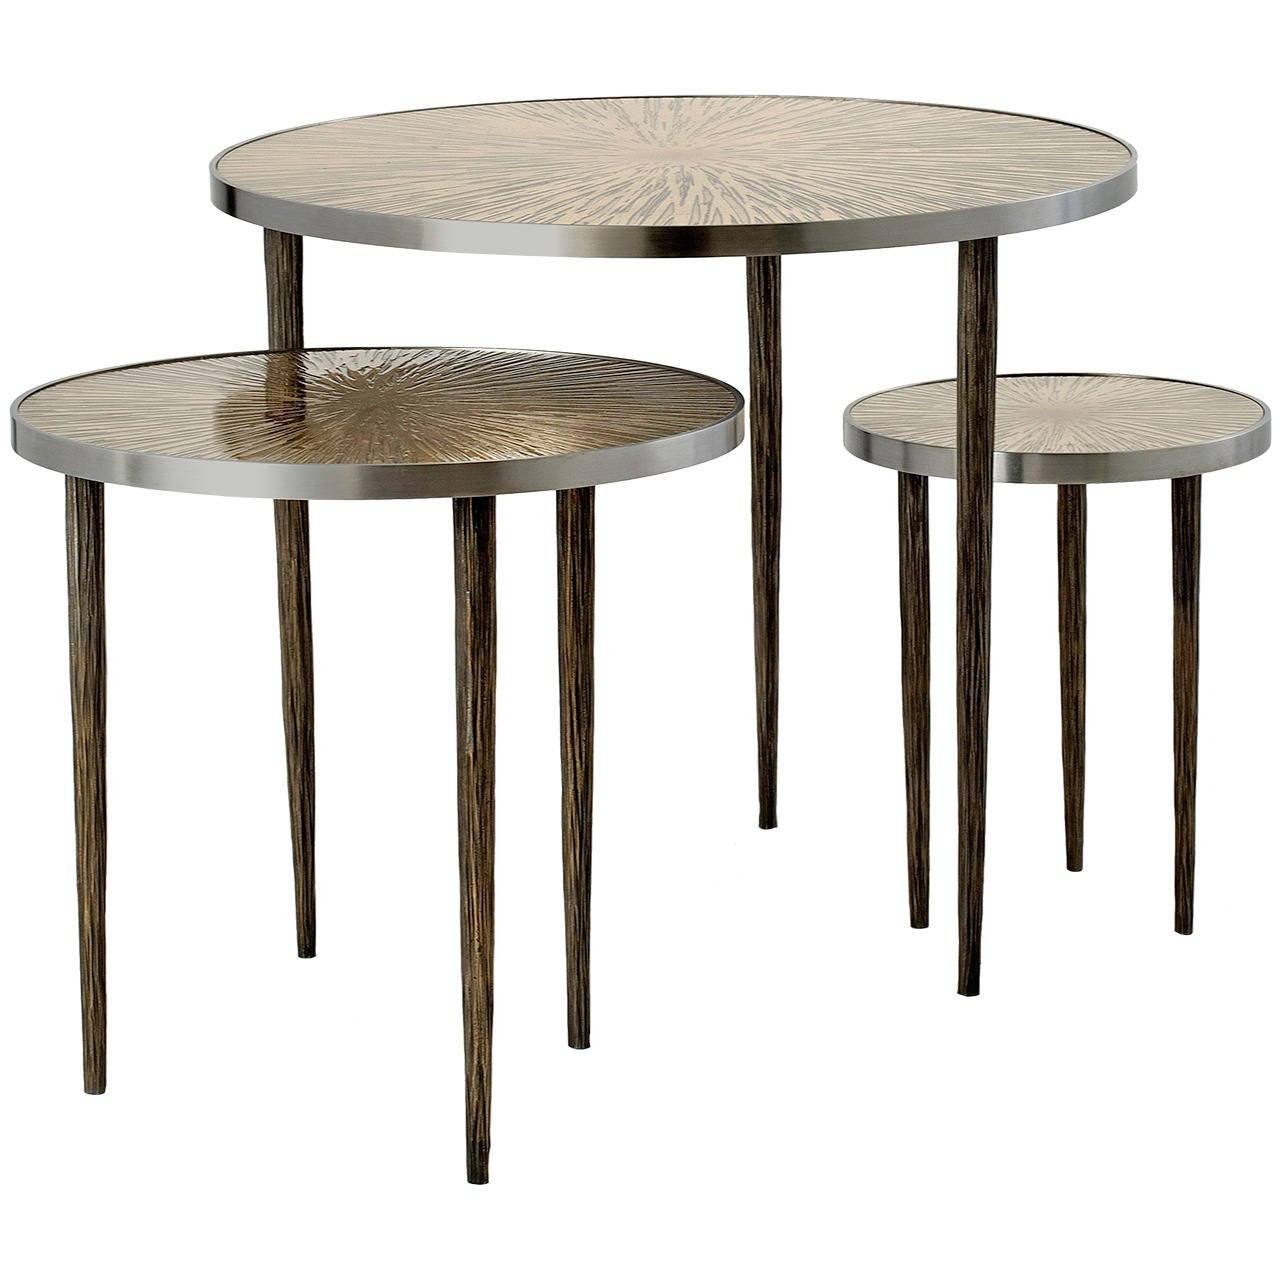 Nesting Tables Astres Set Of Three Nesting Tables By Franck Chartrain At 1stdibs